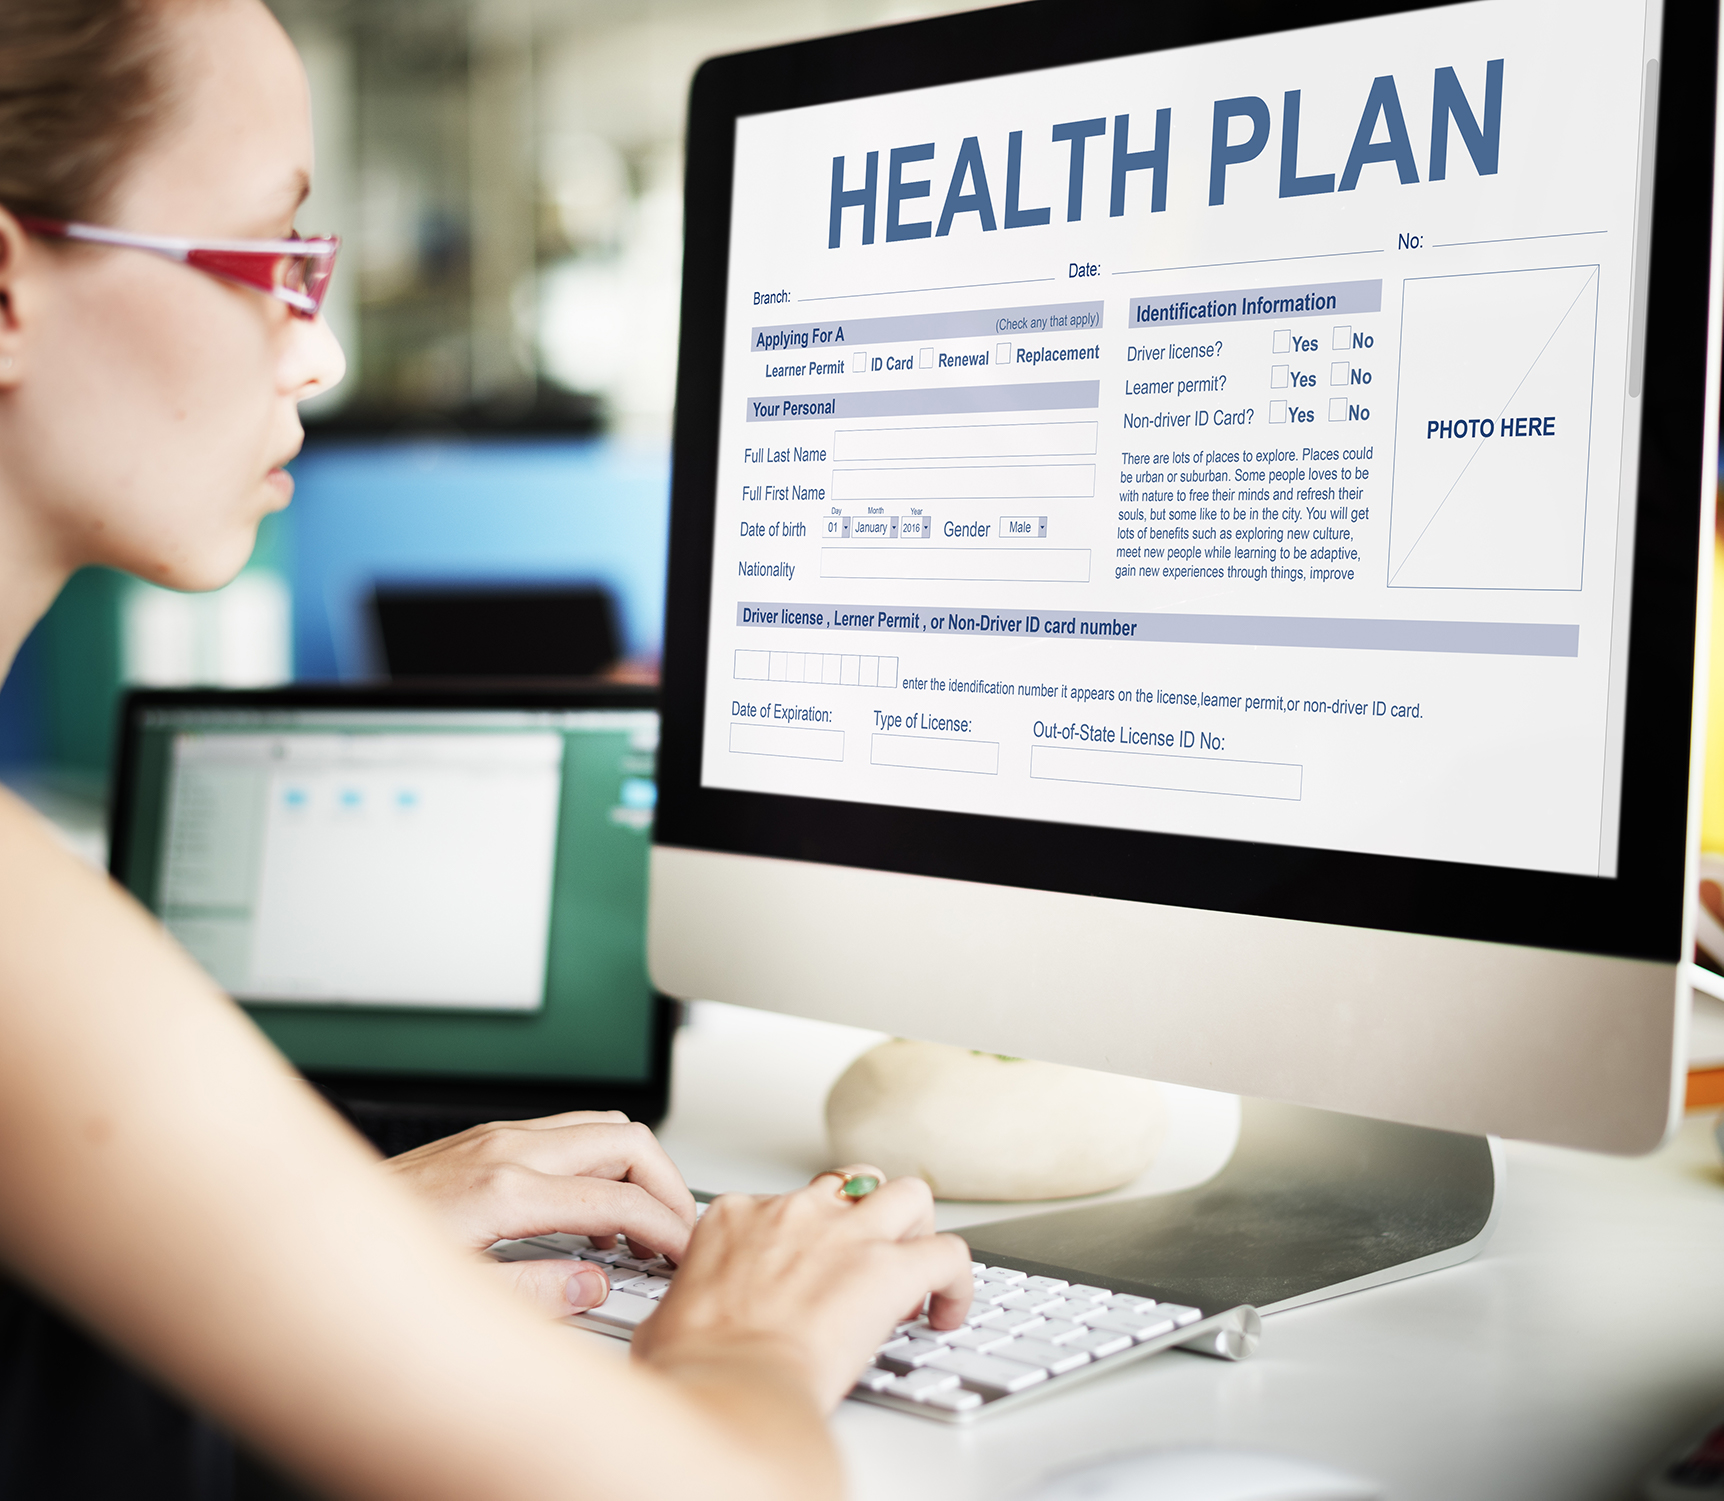 Health Plans An entity, including private insurers and payers; and, national and state government payers (Medicare, Medicaid), that provides or pays for medical care.